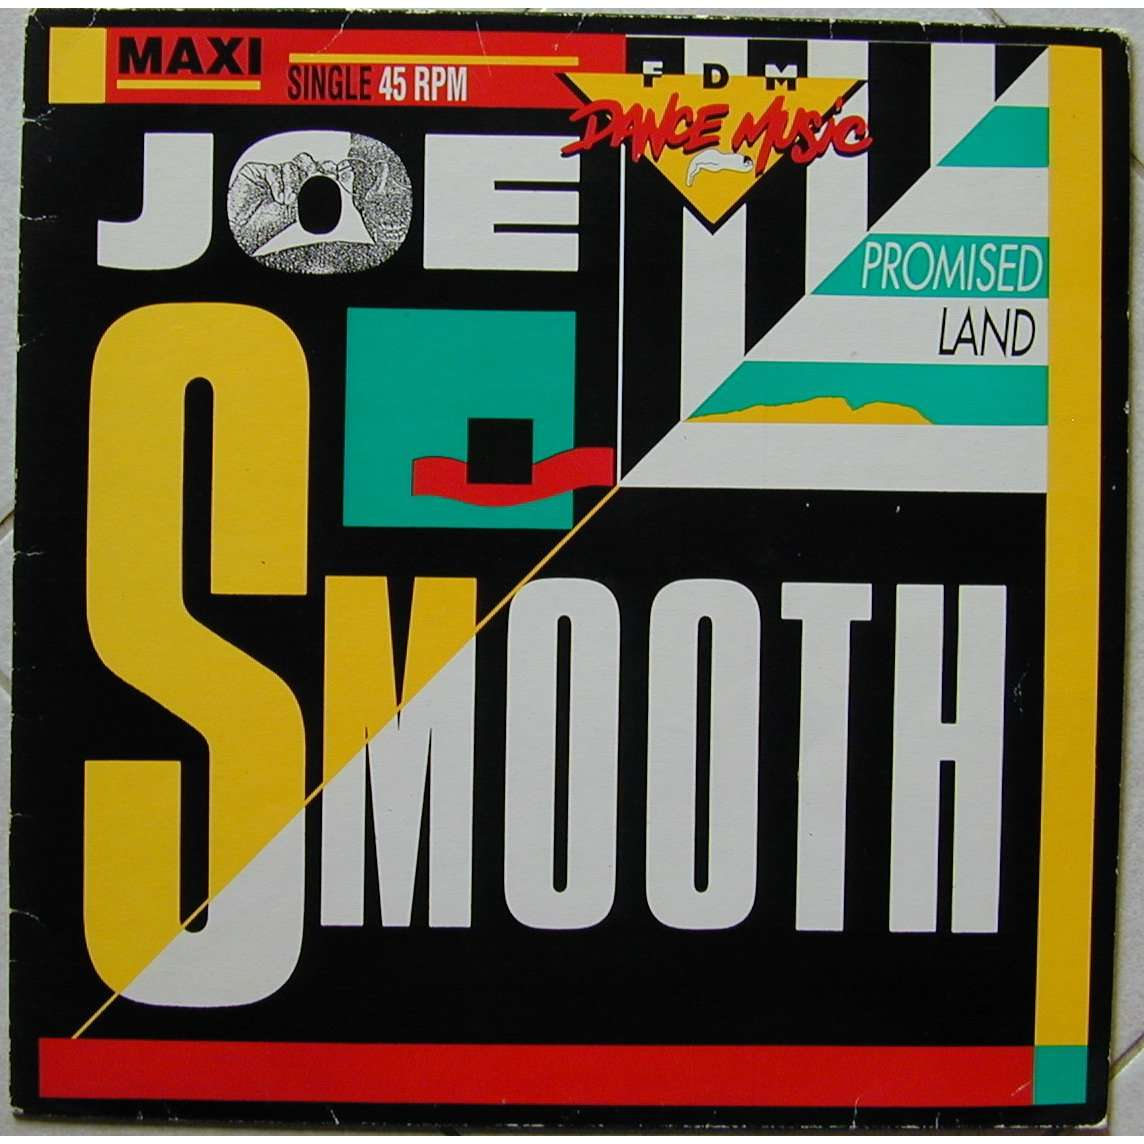 Promisedfieldcover Jpg: Promised Land By JOE SMOOTH, 12inch With Speed06